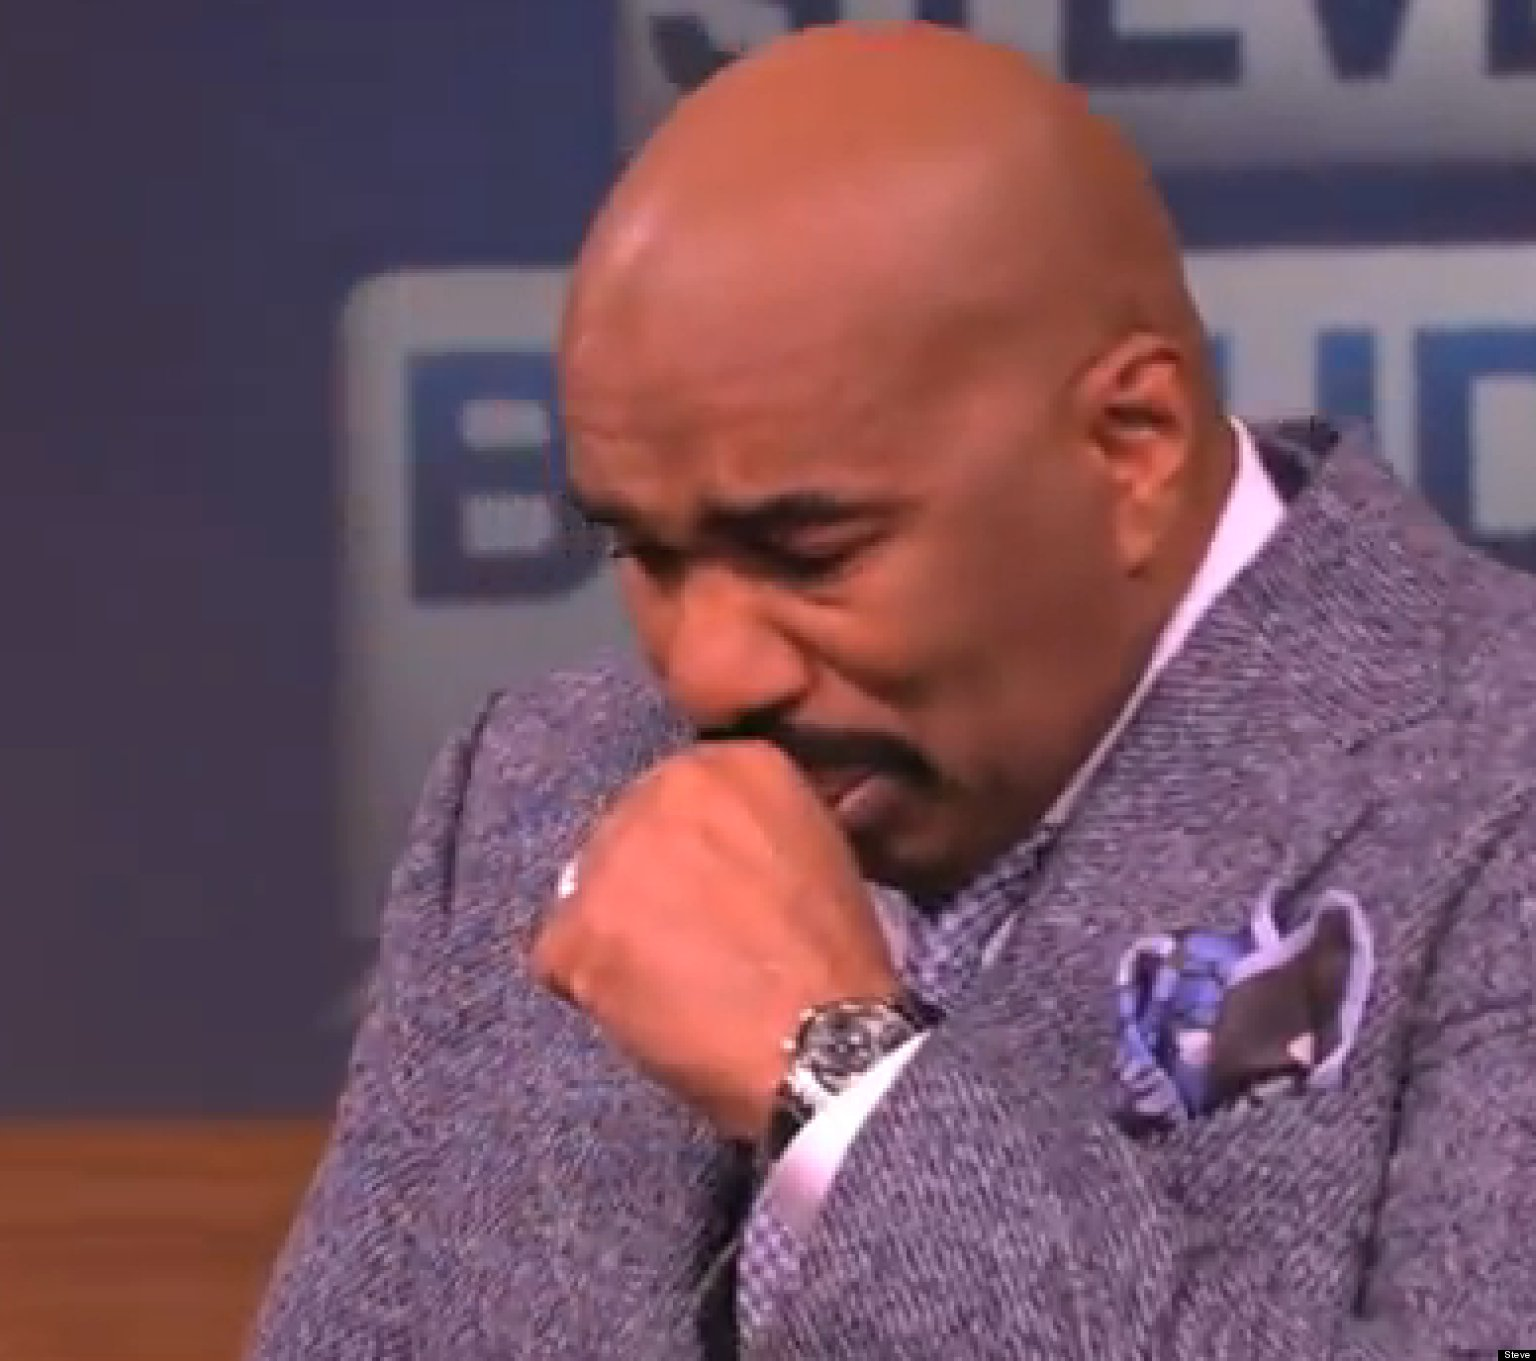 Man Cave Show Steve Harvey : Steve harvey cries breaks down on his tv show after